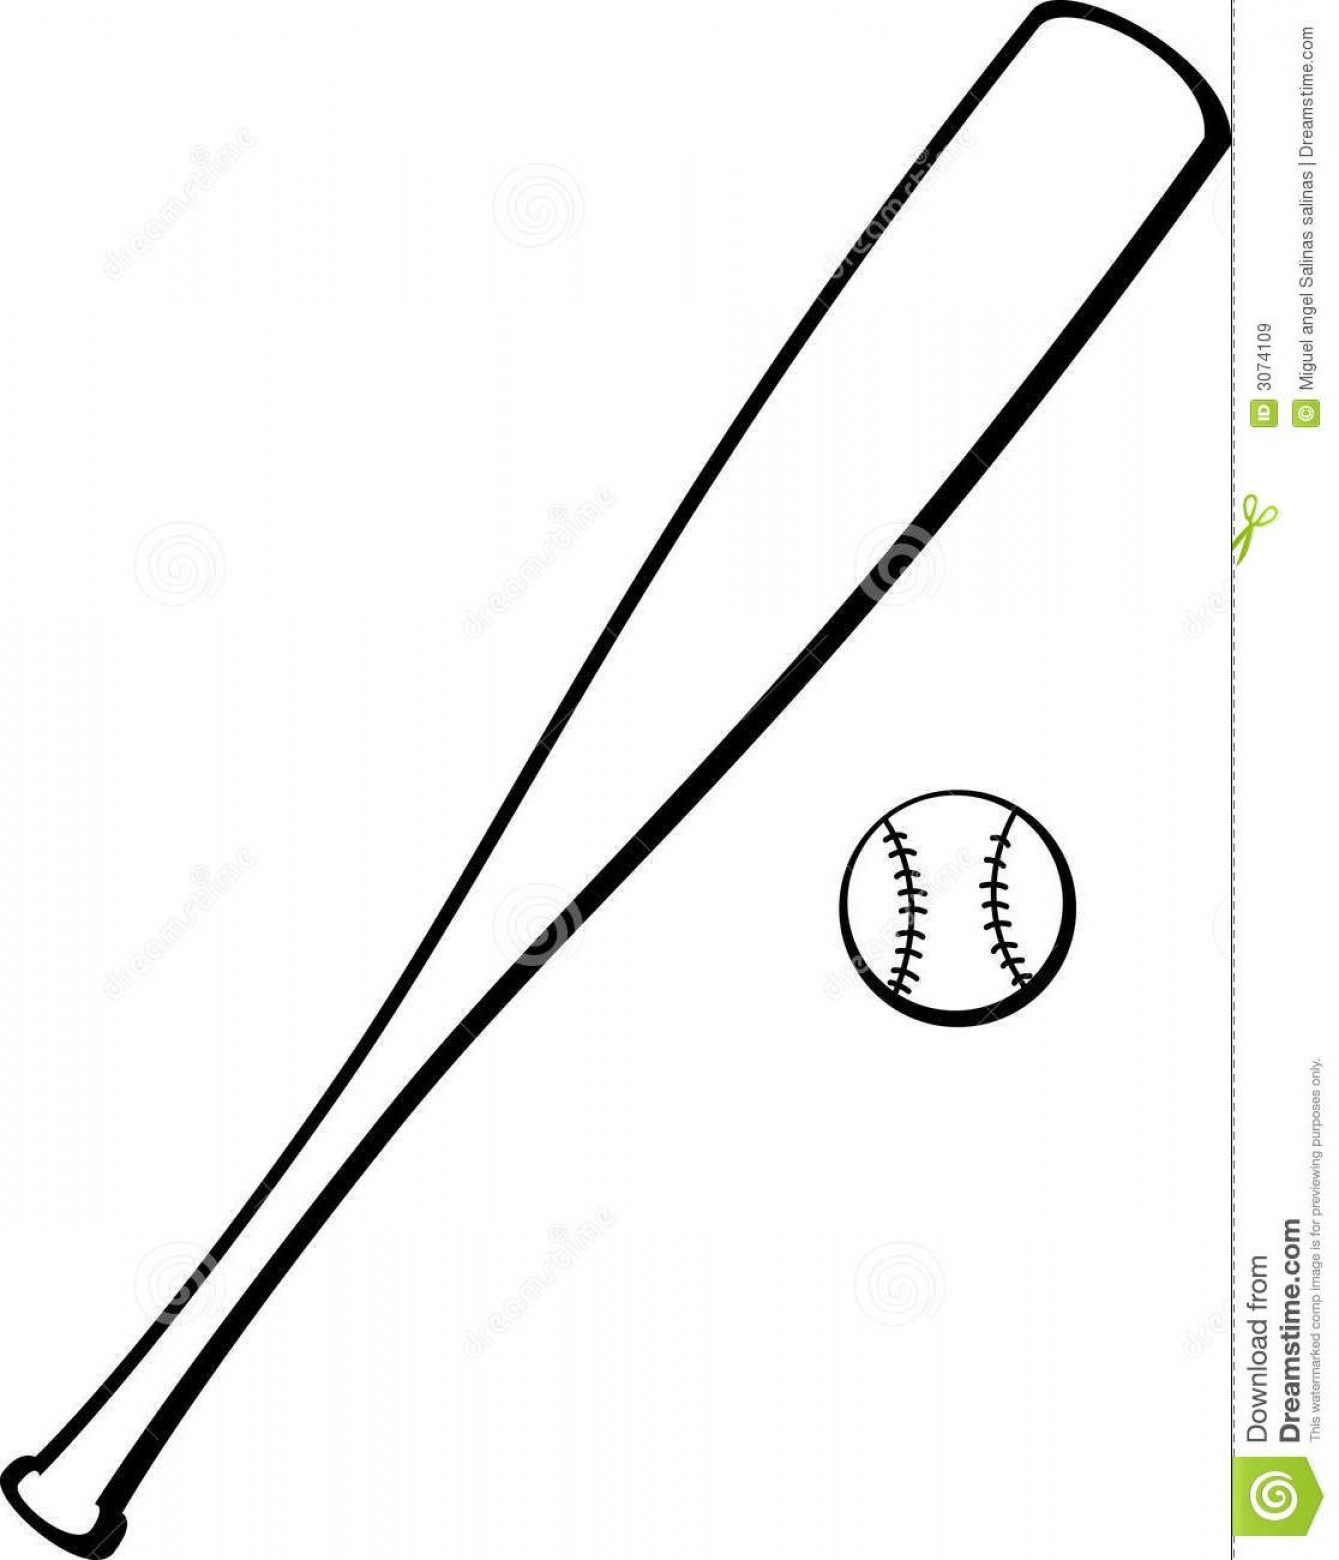 Hd Baseball Bat Outline Clip Art File Free.